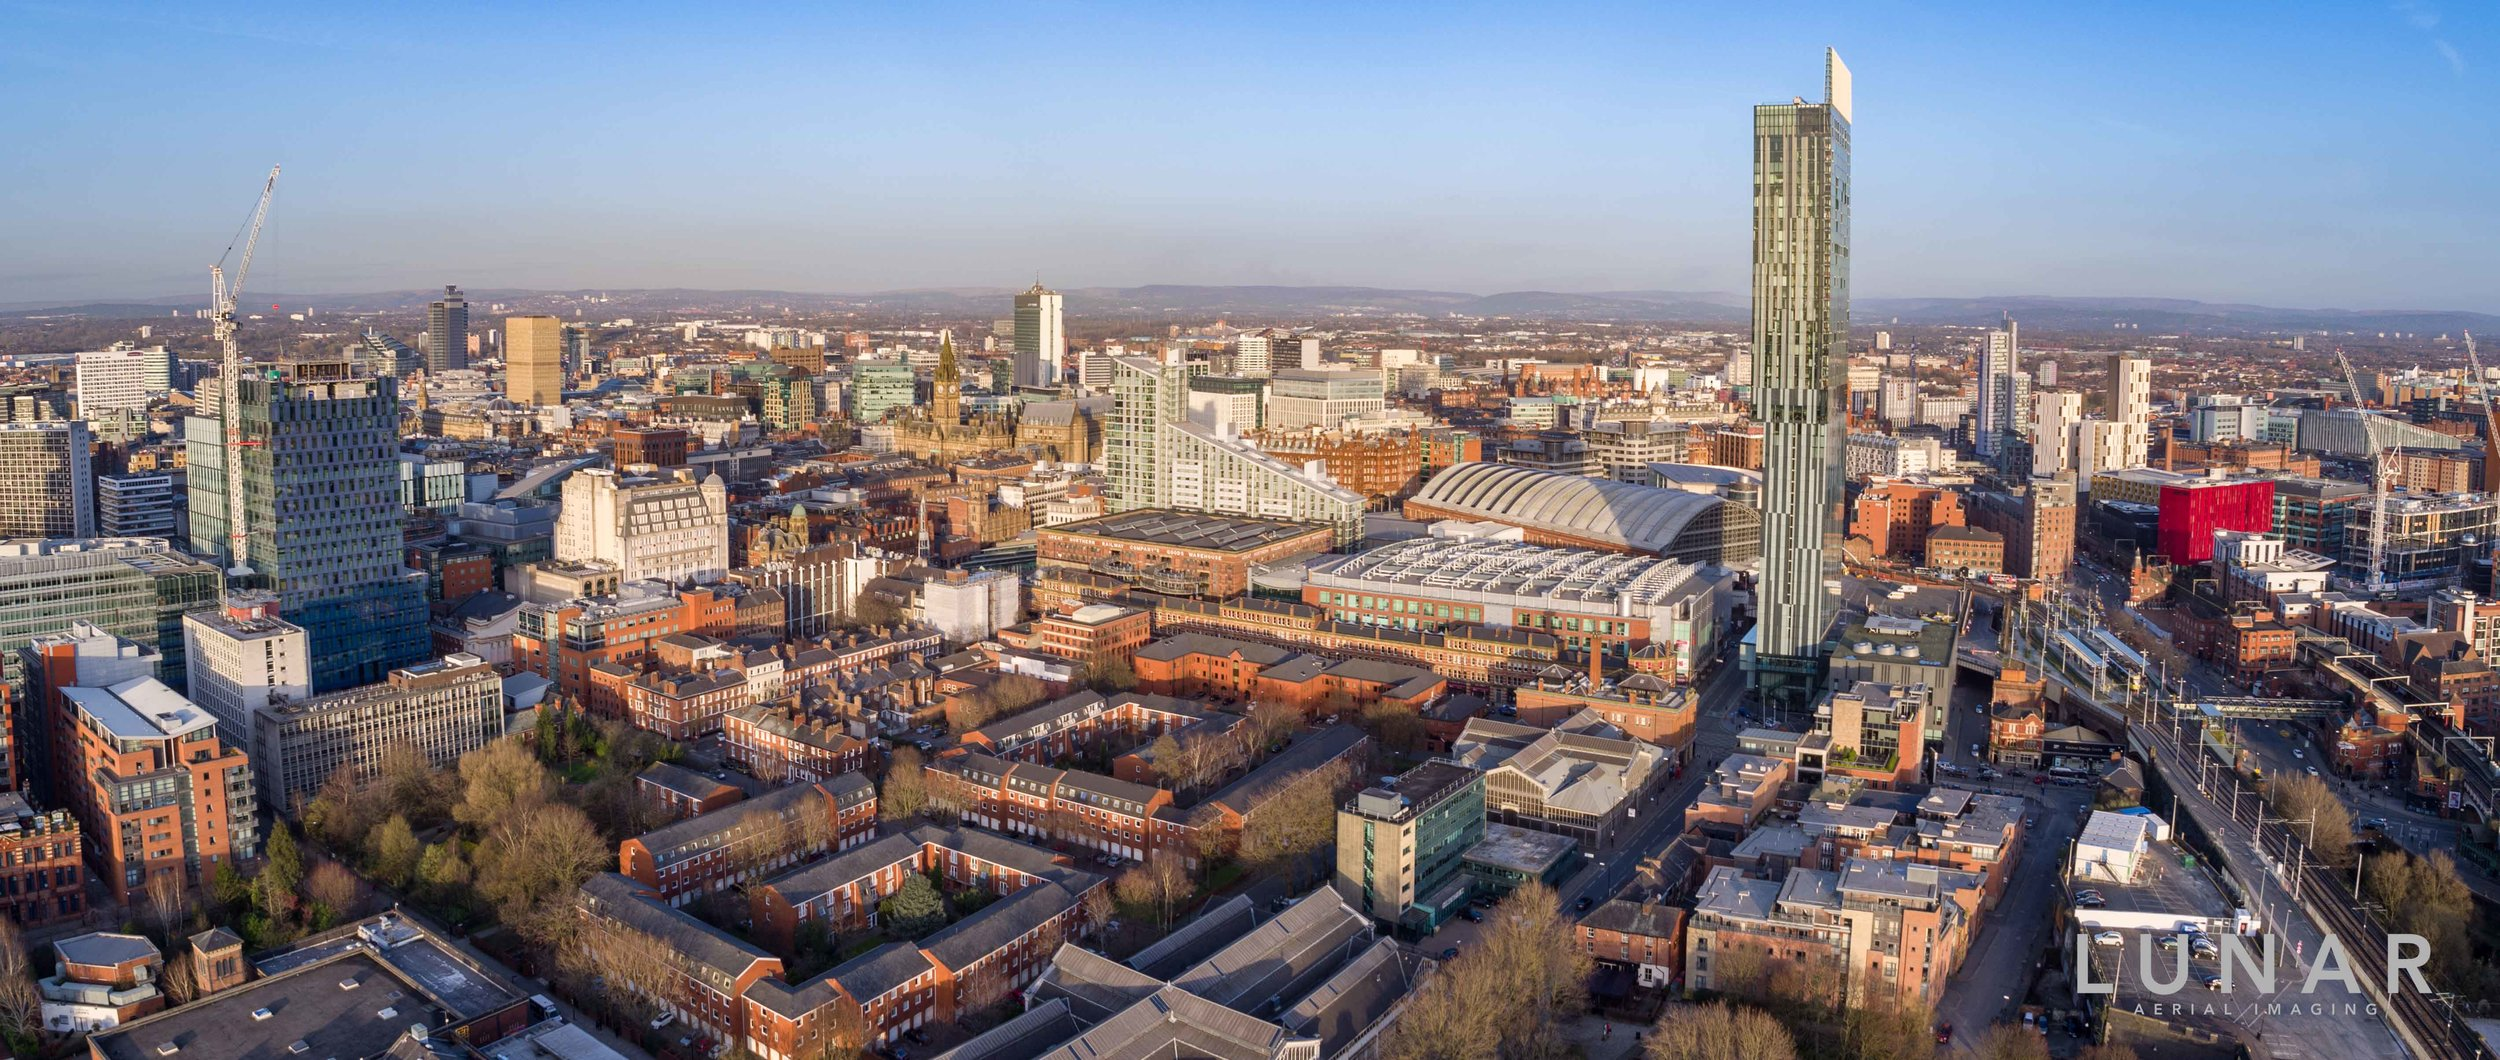 Wide aerial cityscape of Manchester